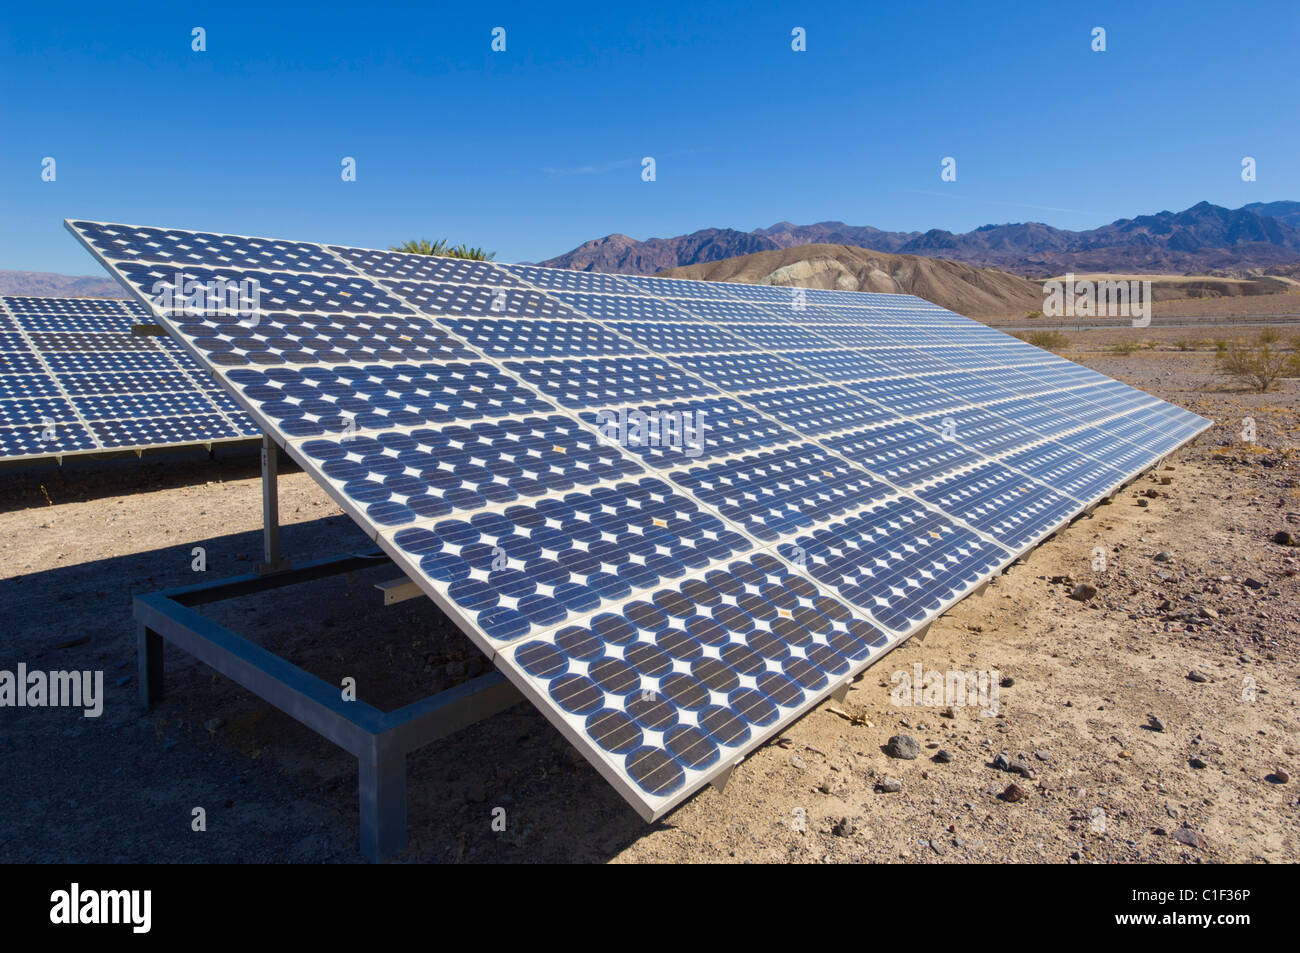 Solar panels solar panel solar photovoltaic (PV) energy system at Furnace Creek resort Death Valley National Park - Stock Image